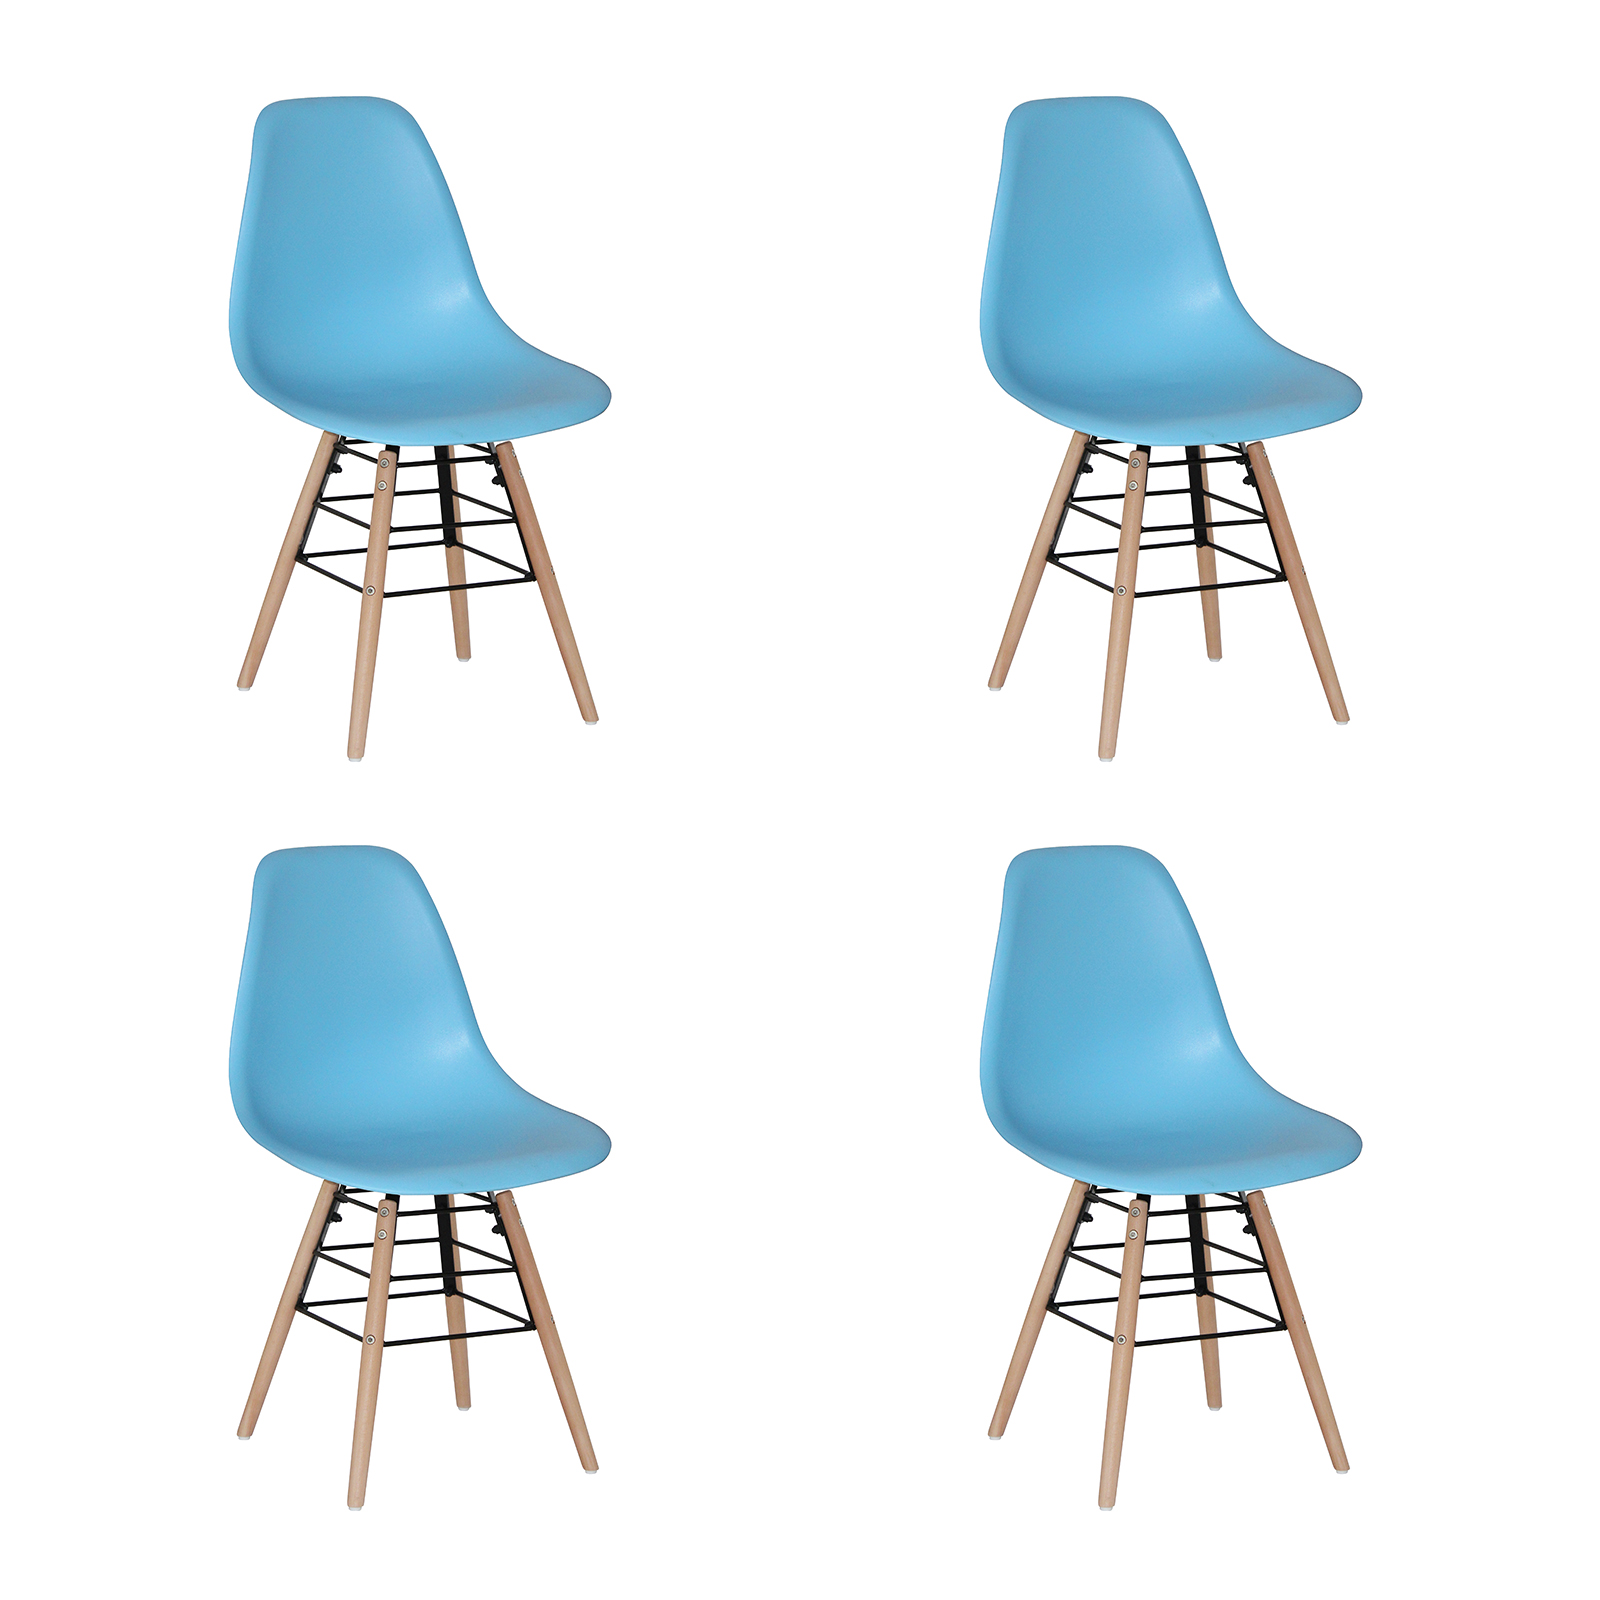 Classic Wooden Sofa Set, River Bright Eames Style Dining Chairs Blue Dining Chairs Fads